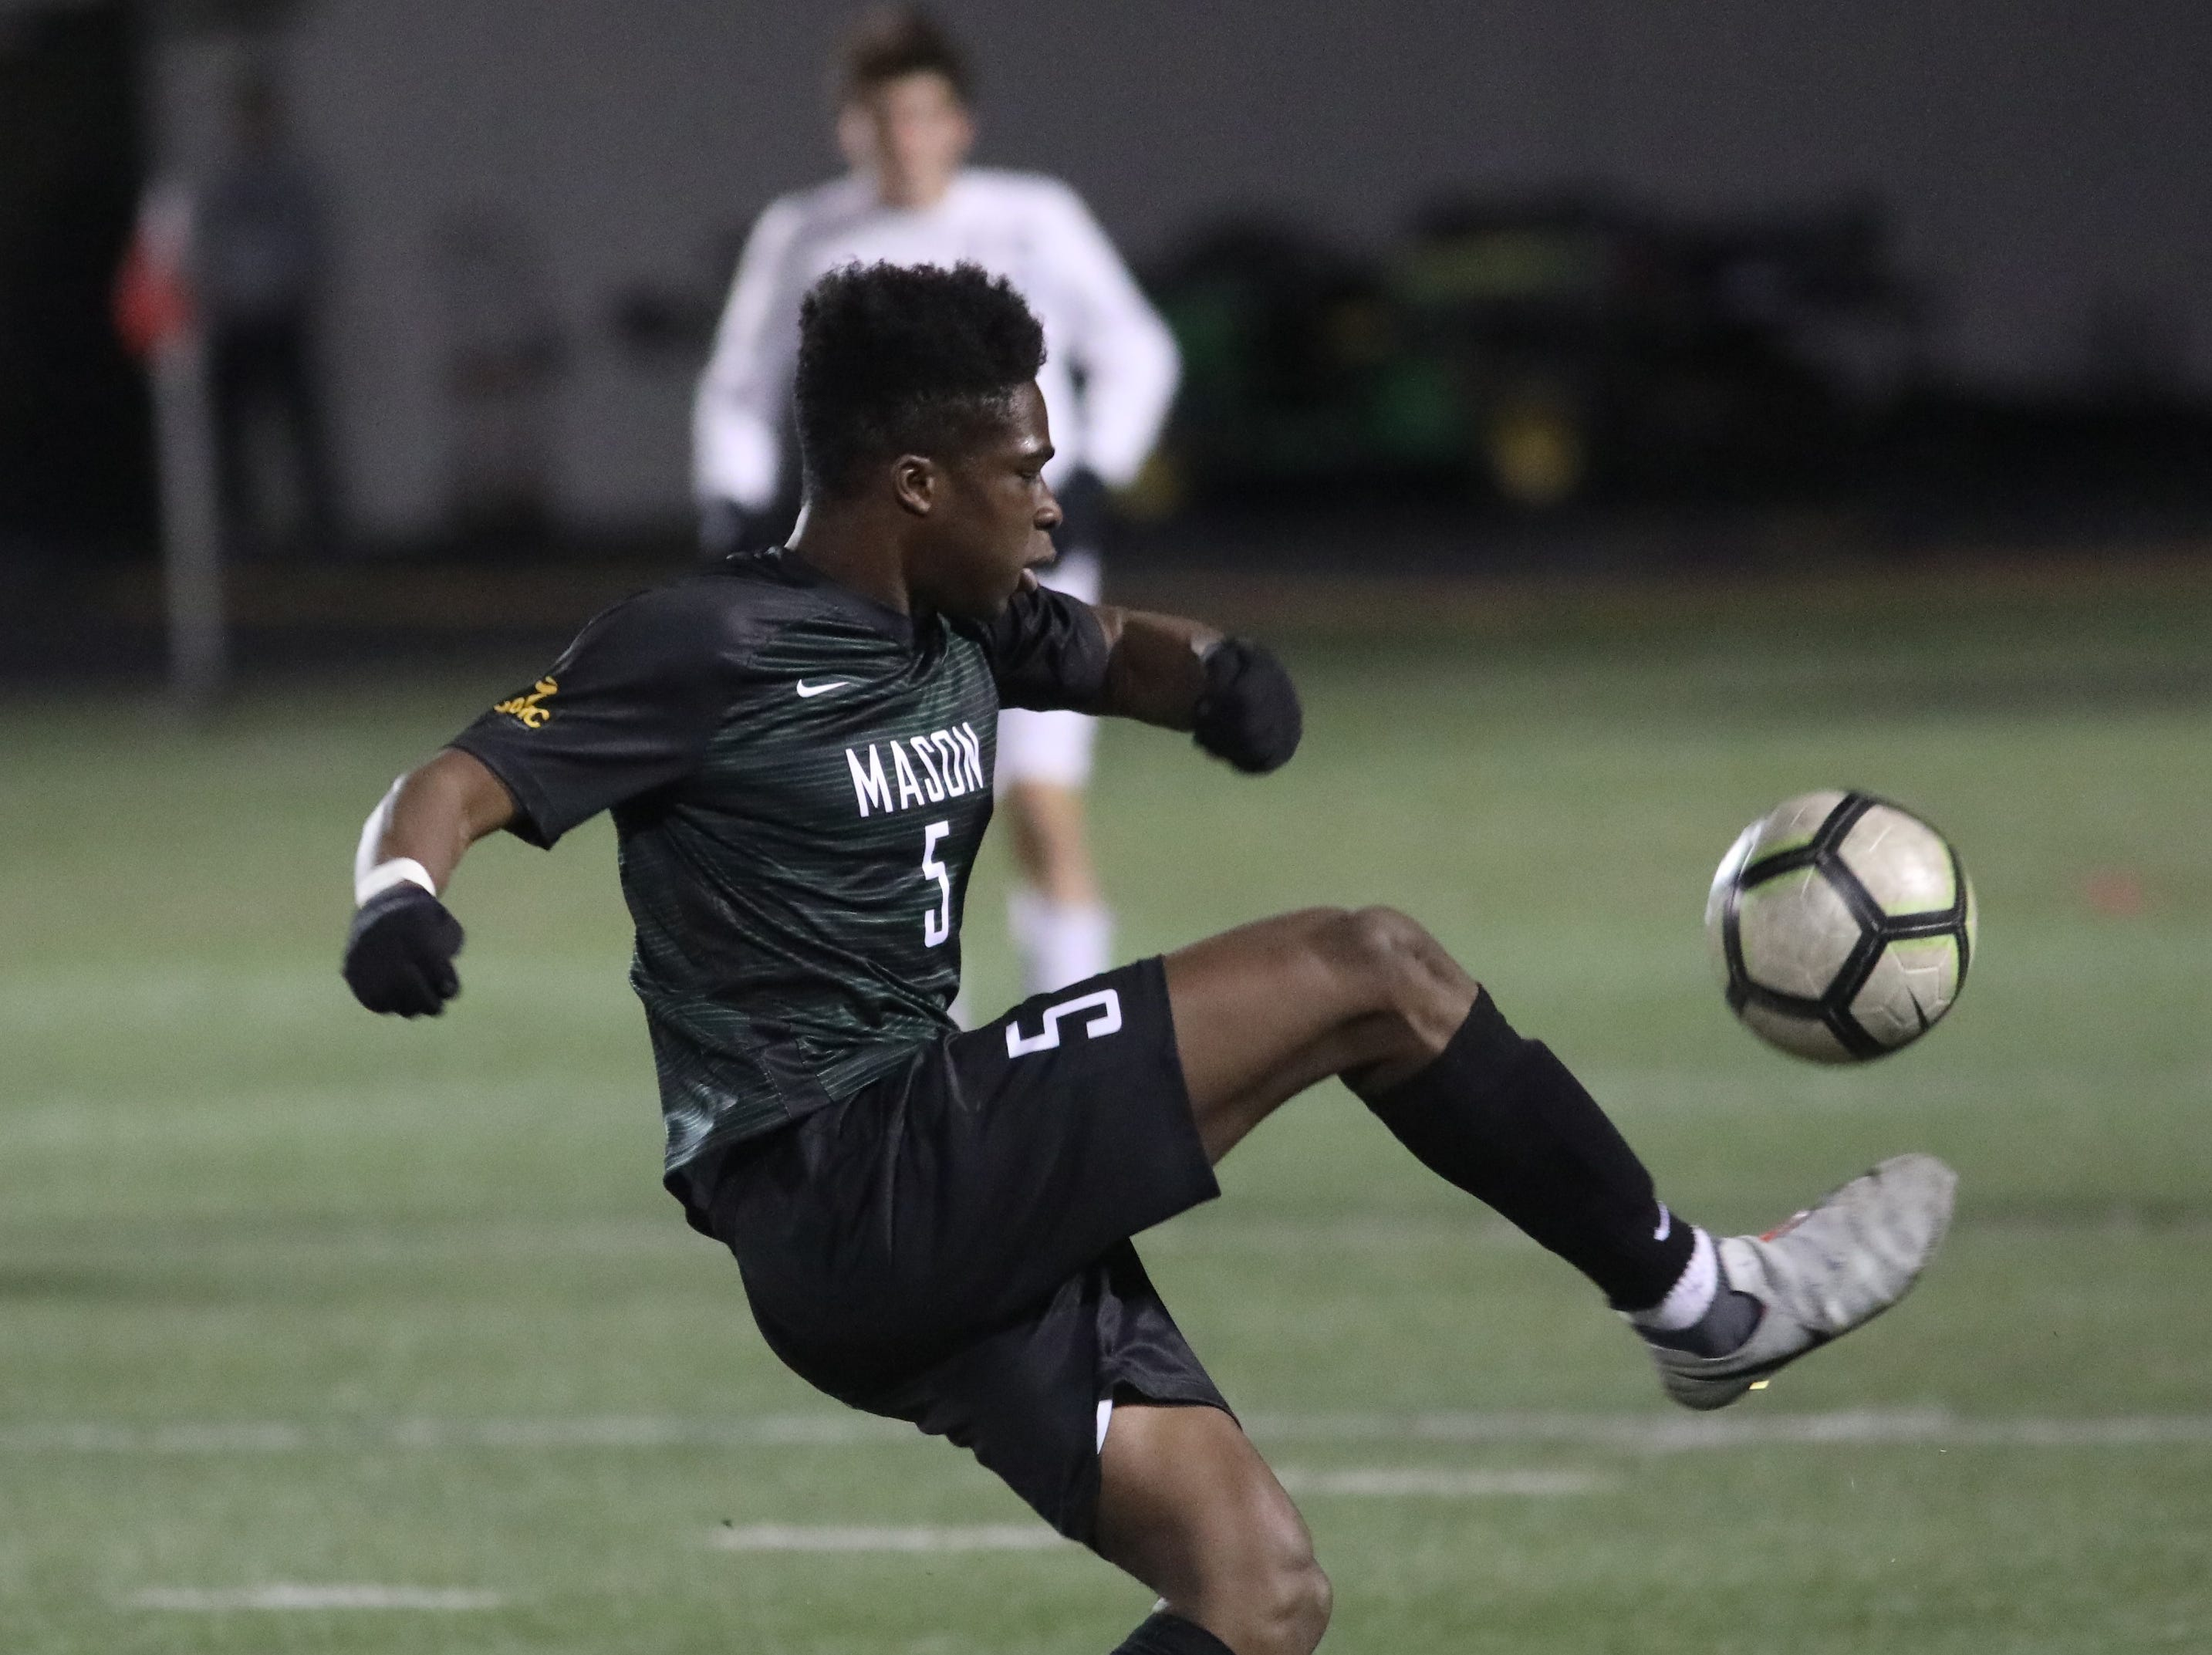 Mason player Bola Adesanya kicks the ball during their district final against Moeller.